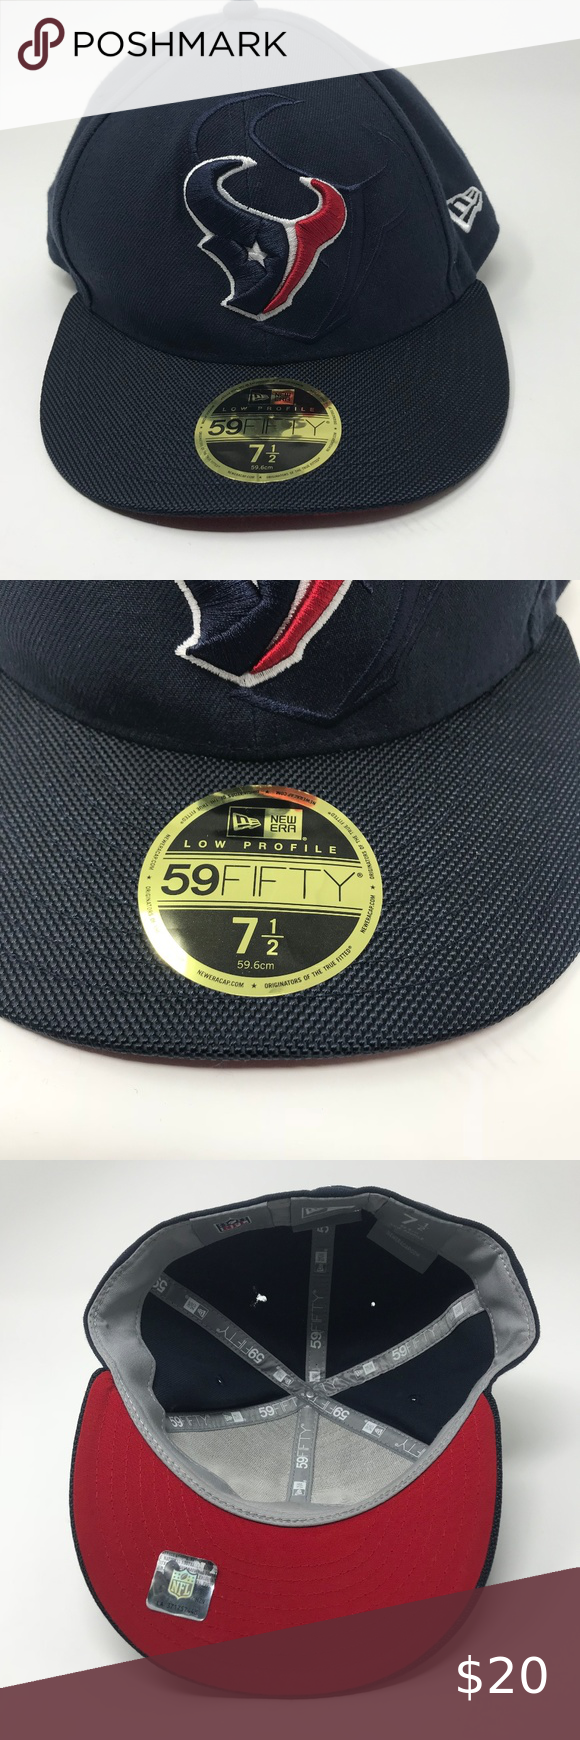 New Era 59Fifty Hat NFL Houston Texans Hat 7 1 2 N Inventory    A433 Brand  New  Era 59Fifty Color  Black with Houston Texans Logo Size  7 1 2 Mens New Era  ... d0aa58faf52c